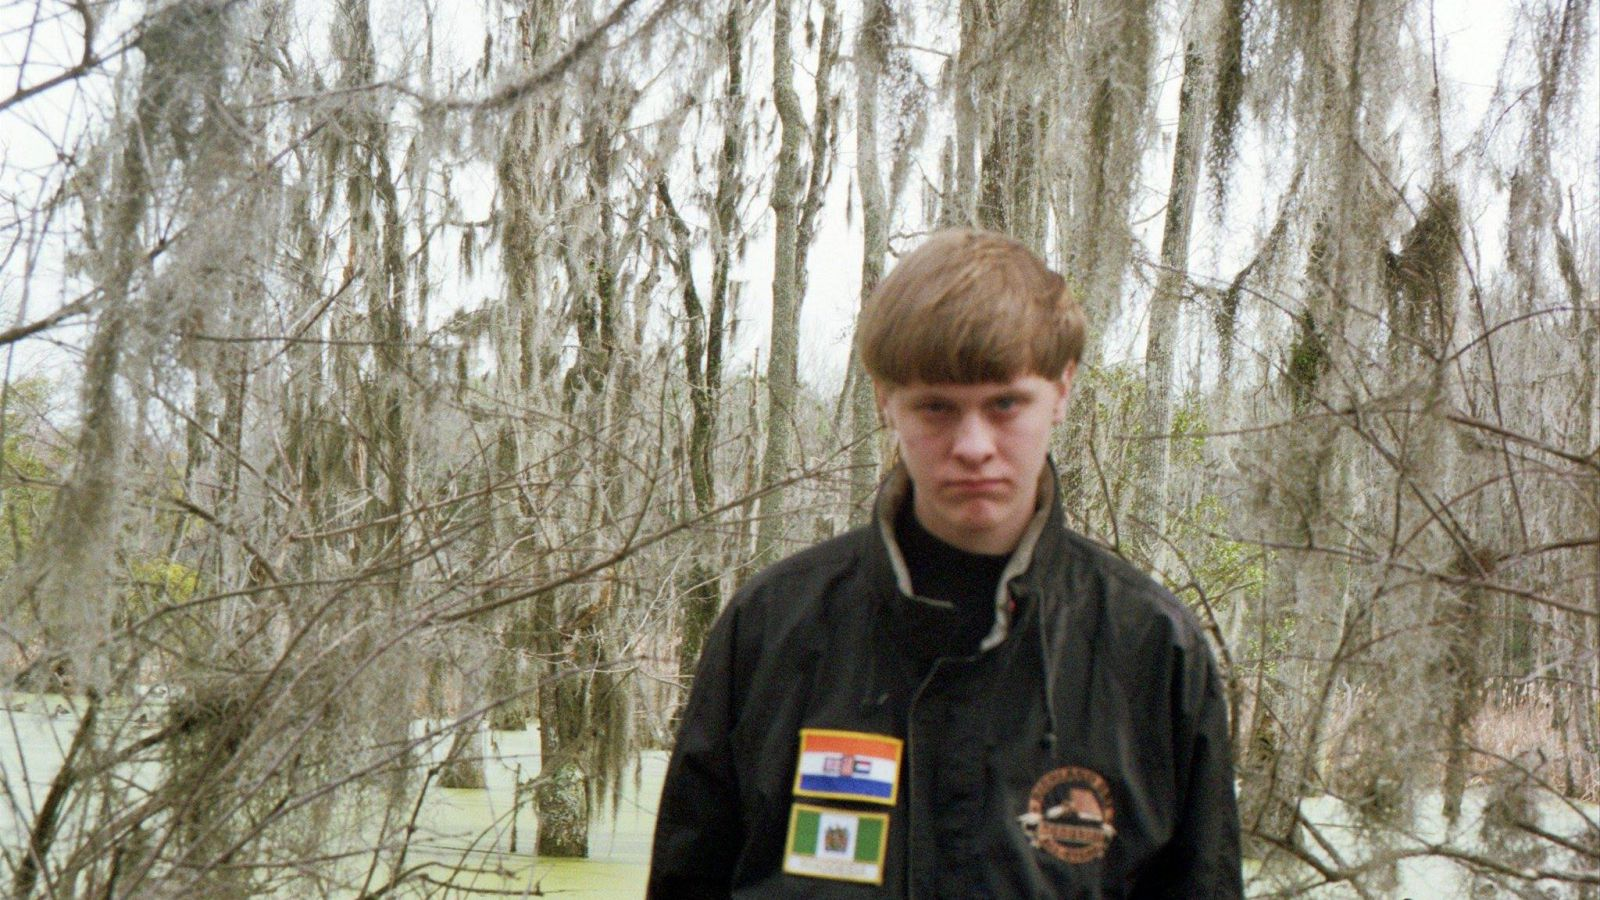 UPDATE: Charleston Shooter Caught. On Psych Drugs. Obama Calls For Gun Control On The Way to a Fund raiser